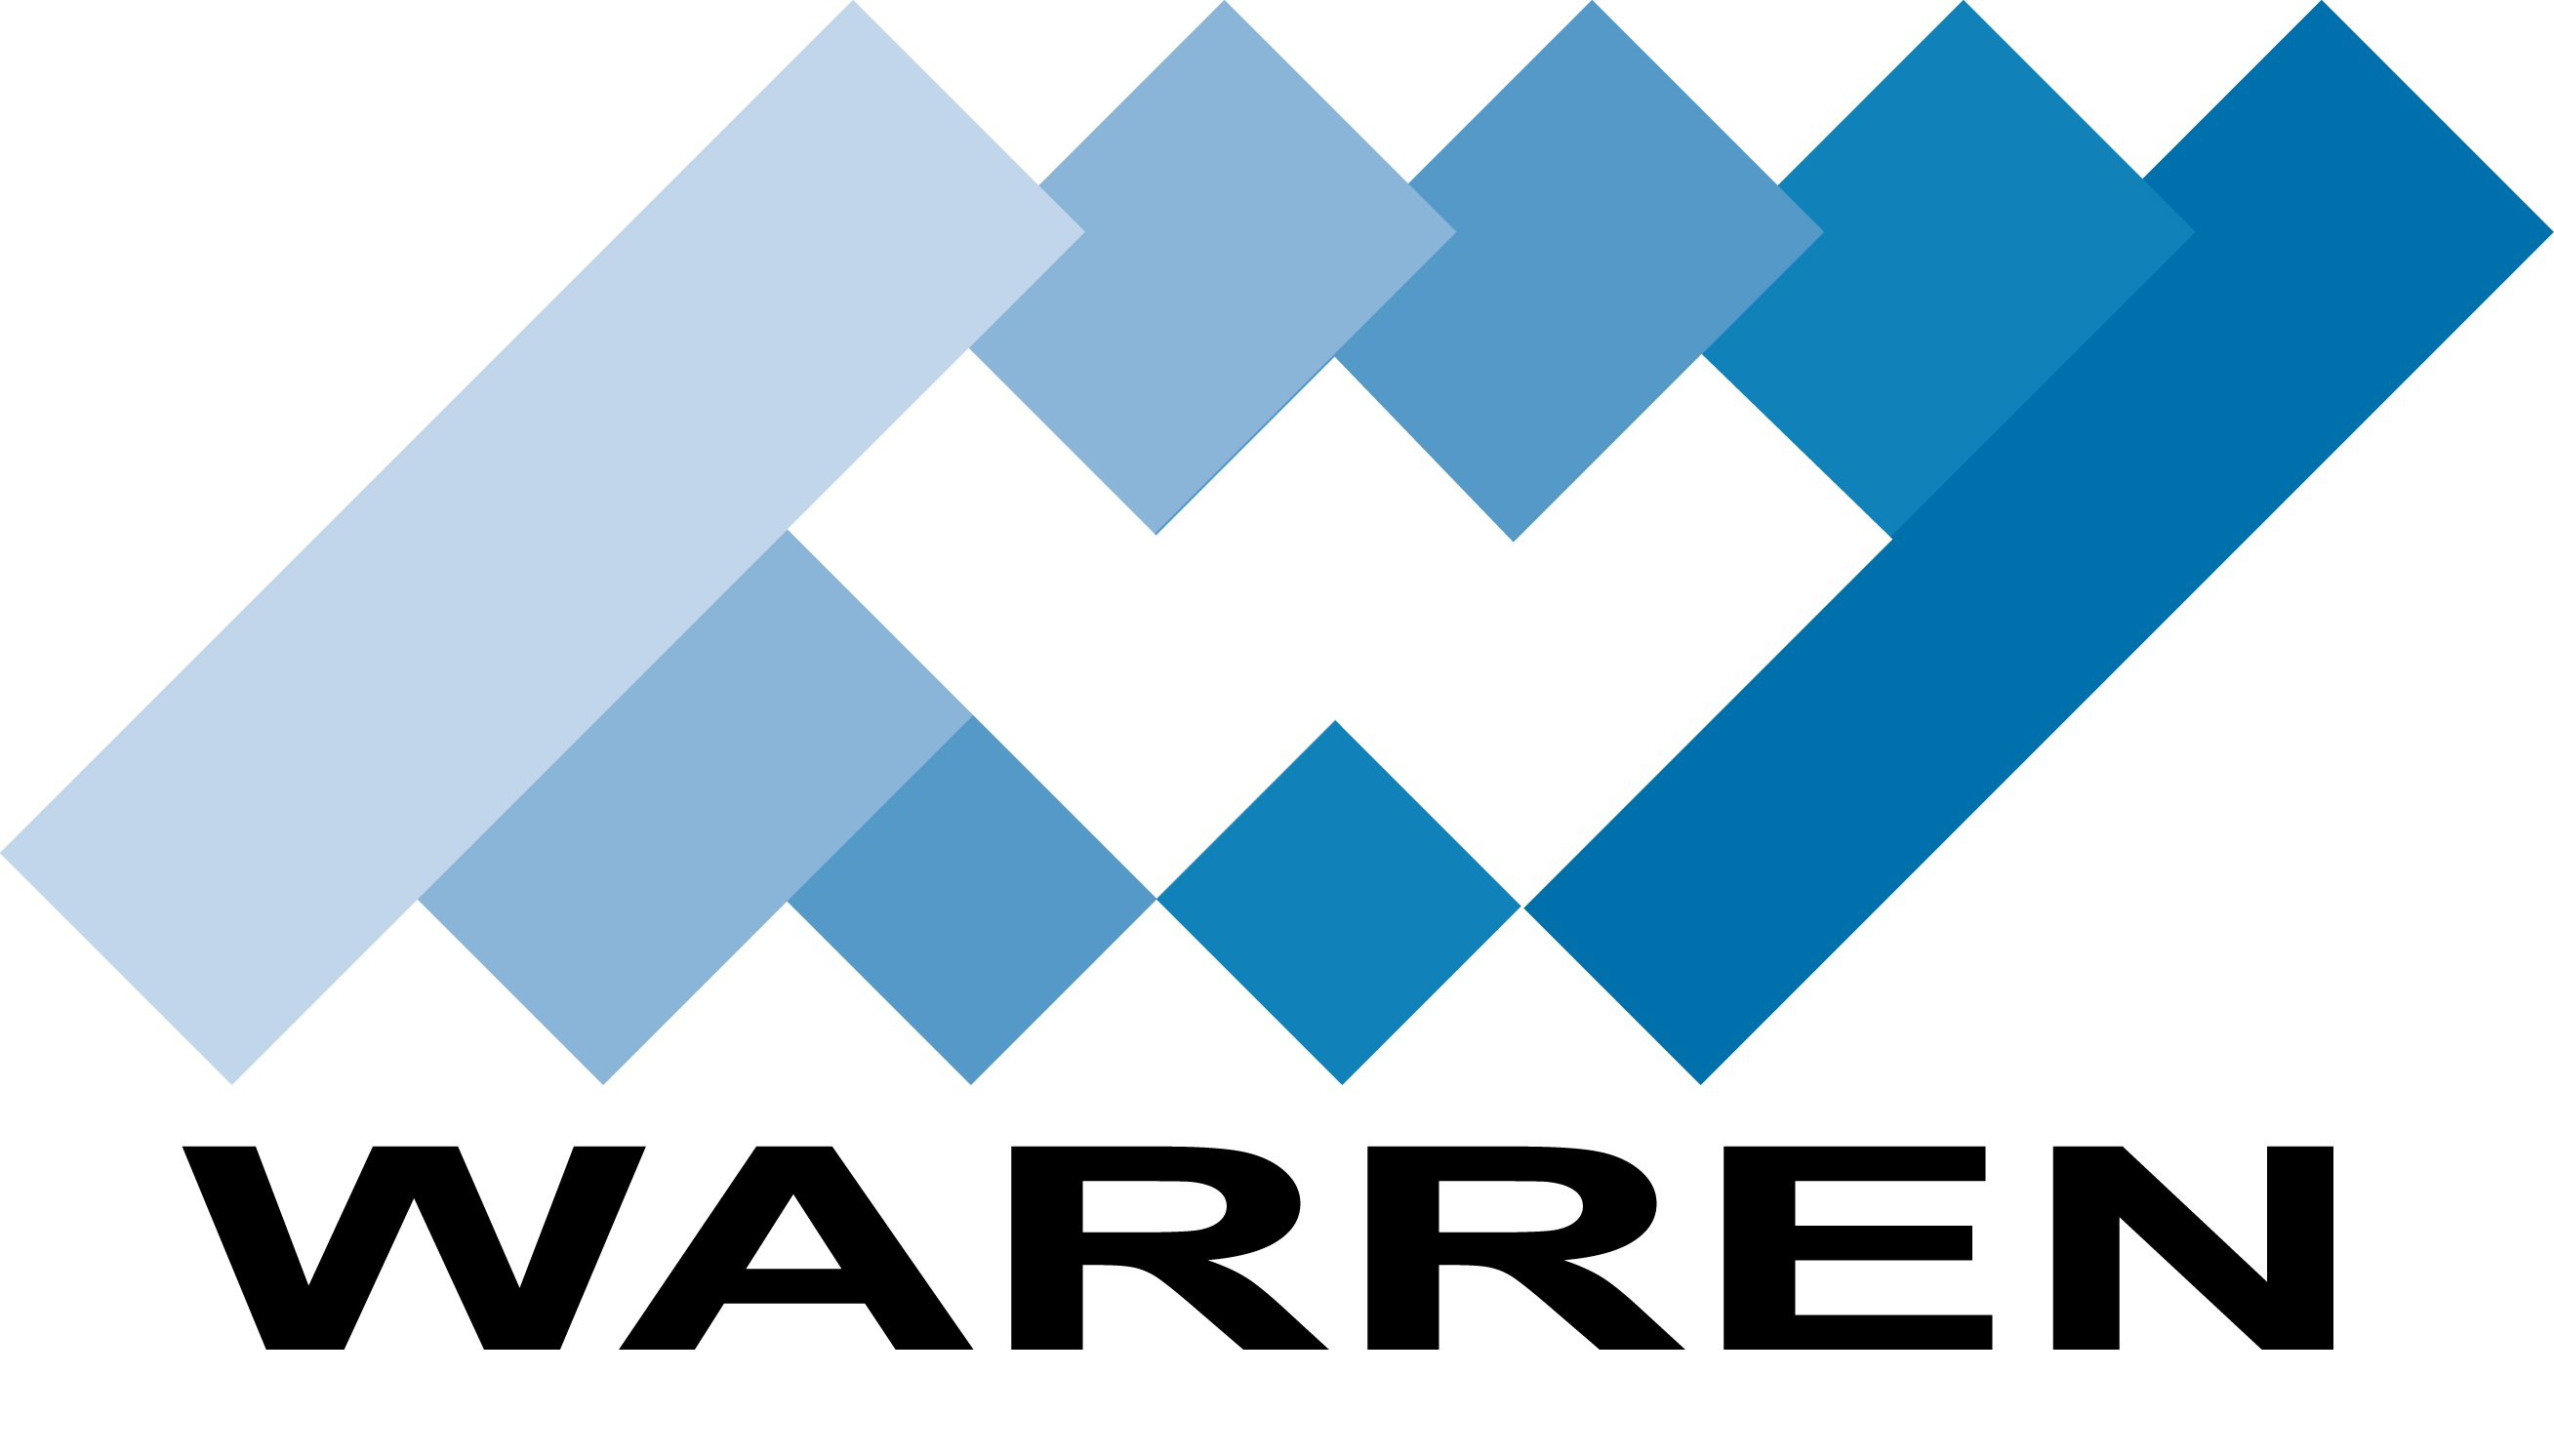 Warren Manufacturing, Inc. in Birmingham, AL. Corporate headquarters; bulk feed transportation equipment, including feed trailers & bodies.